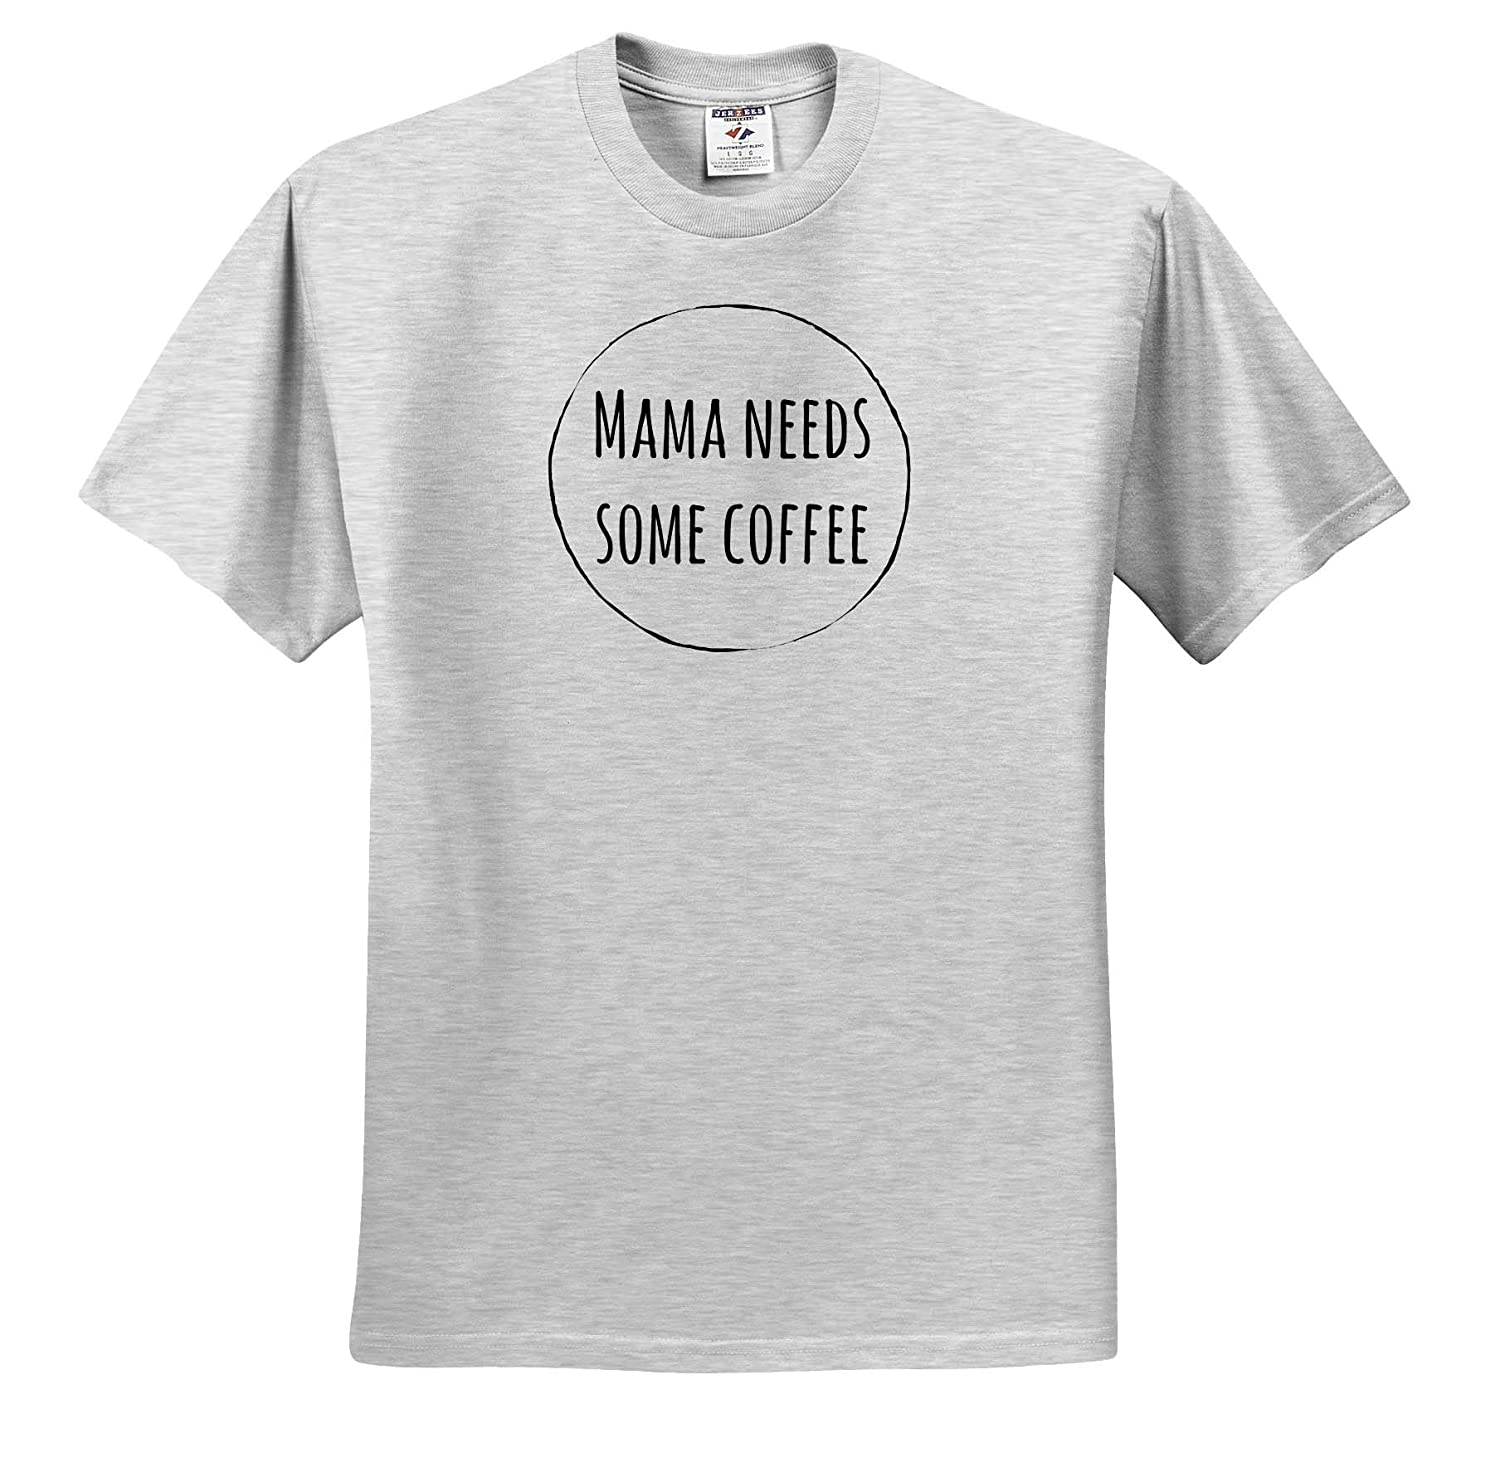 3dRose Gabriella B Image of Mama Needs Some Coffee Quote Quote T-Shirts